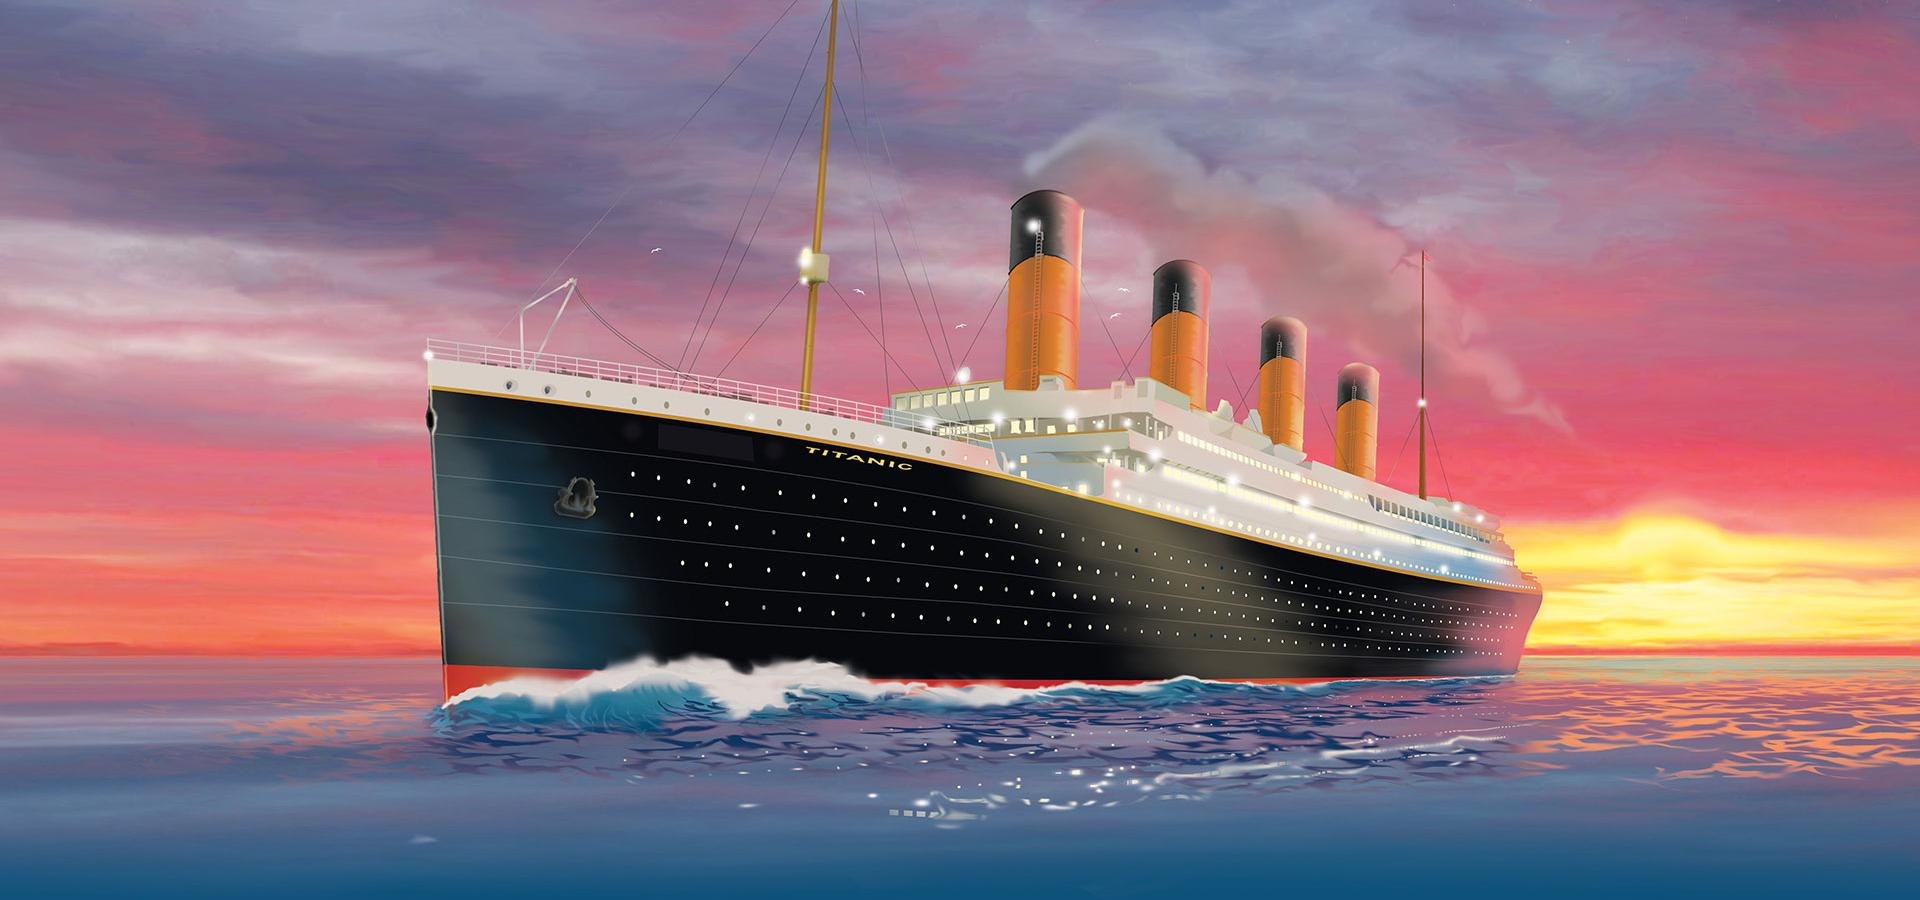 Now On: Titanic Exhibition @ Komplex Budapest